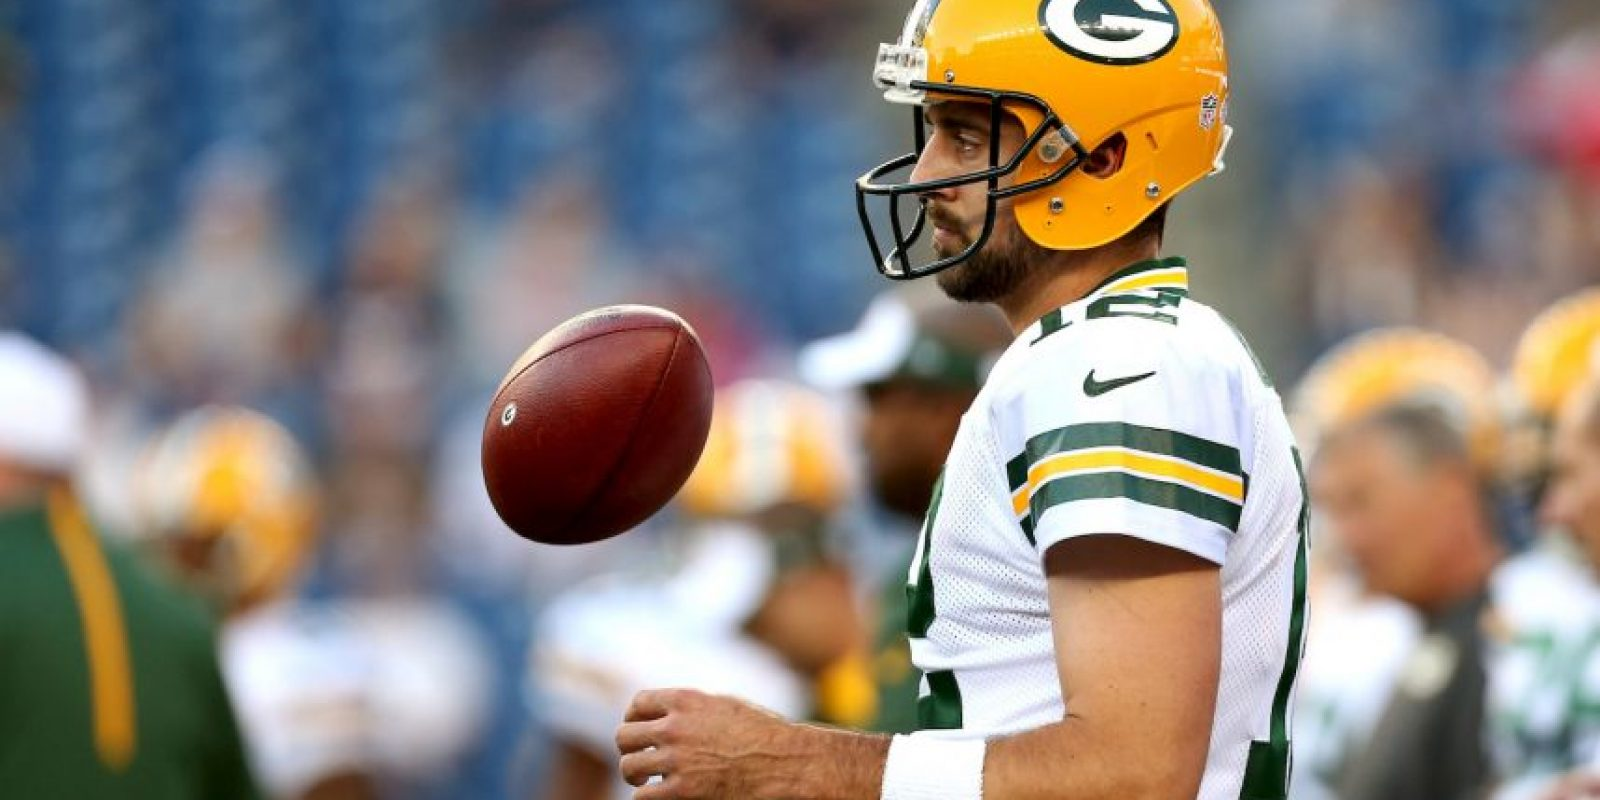 8. Aaron Rodgers Foto:Getty Images